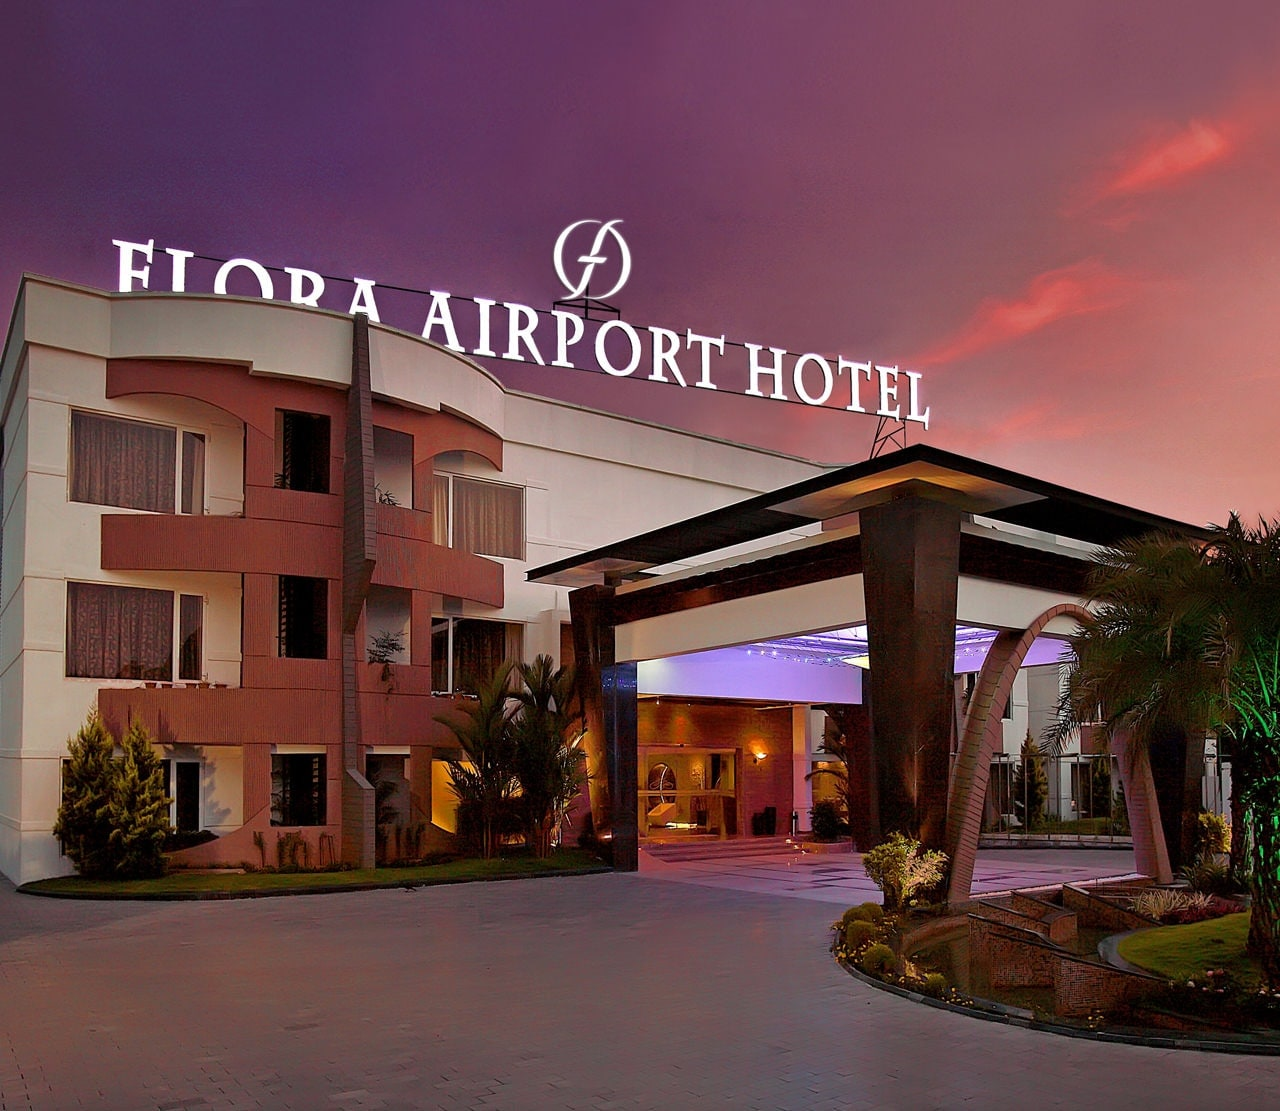 Hotel Silver Shine Flora Airport Hotel Official Site Kochi Kerala India Overview